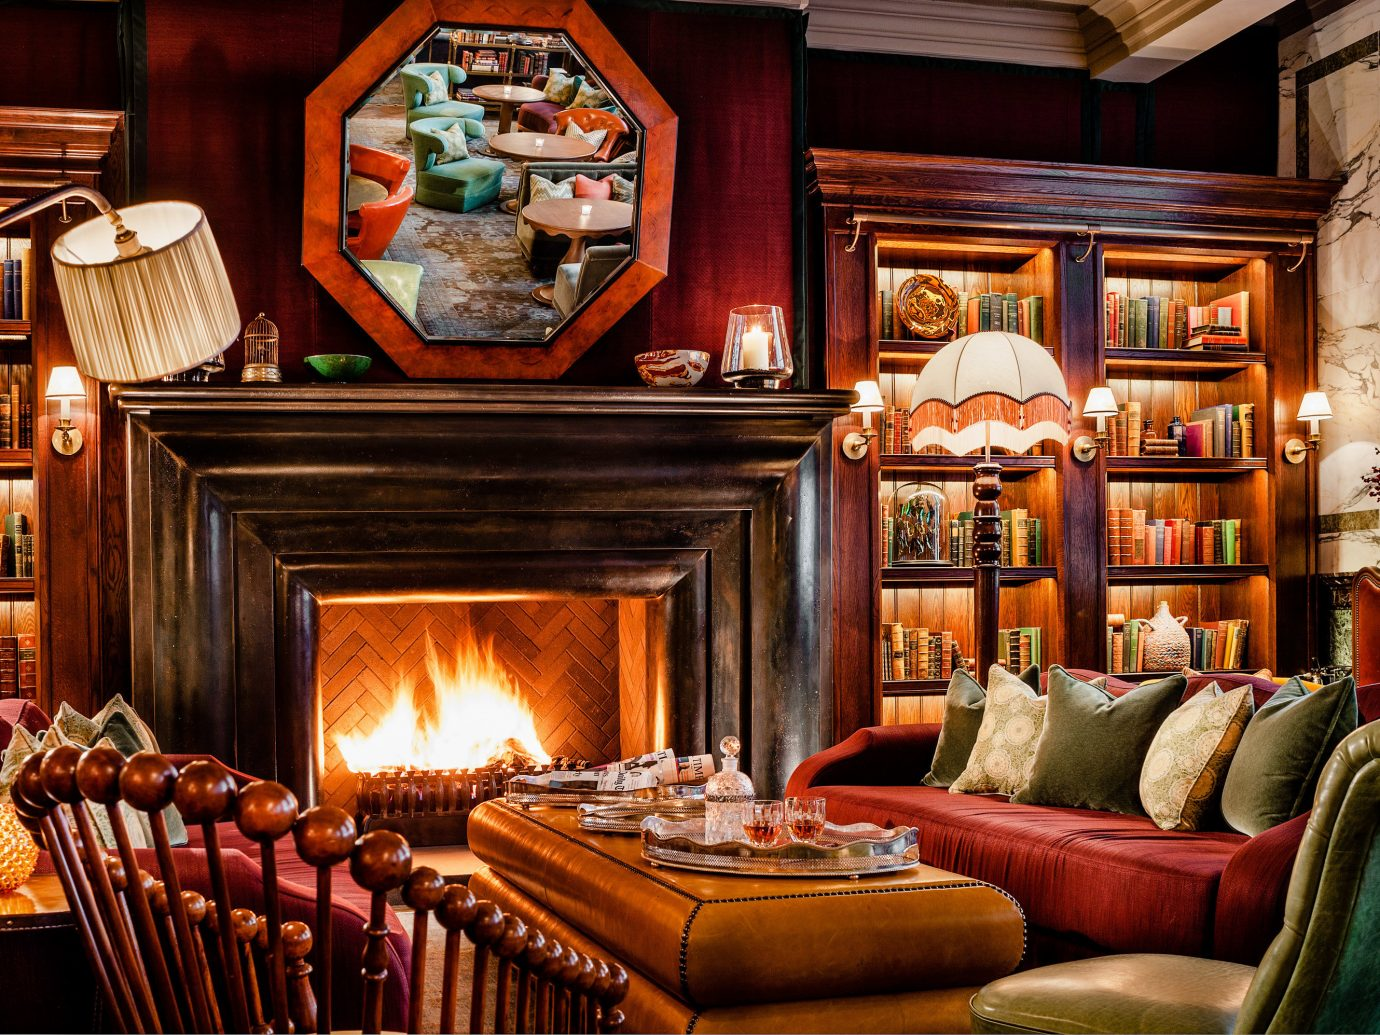 Food + Drink Trip Ideas indoor Living room living room interior design home Fireplace hearth furniture